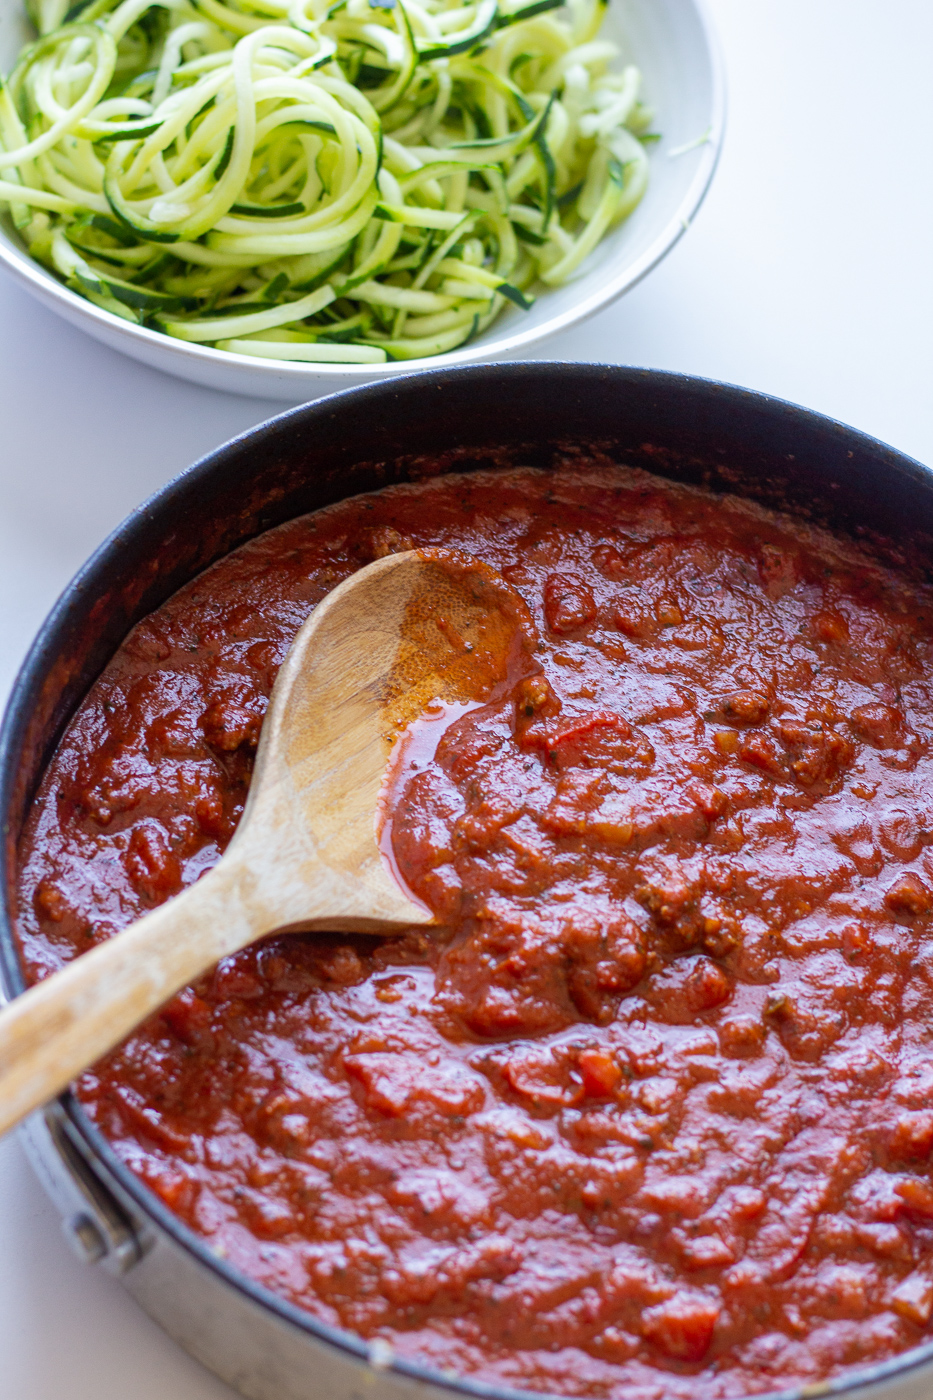 My Favorite Healthy Homemade Meat Sauce